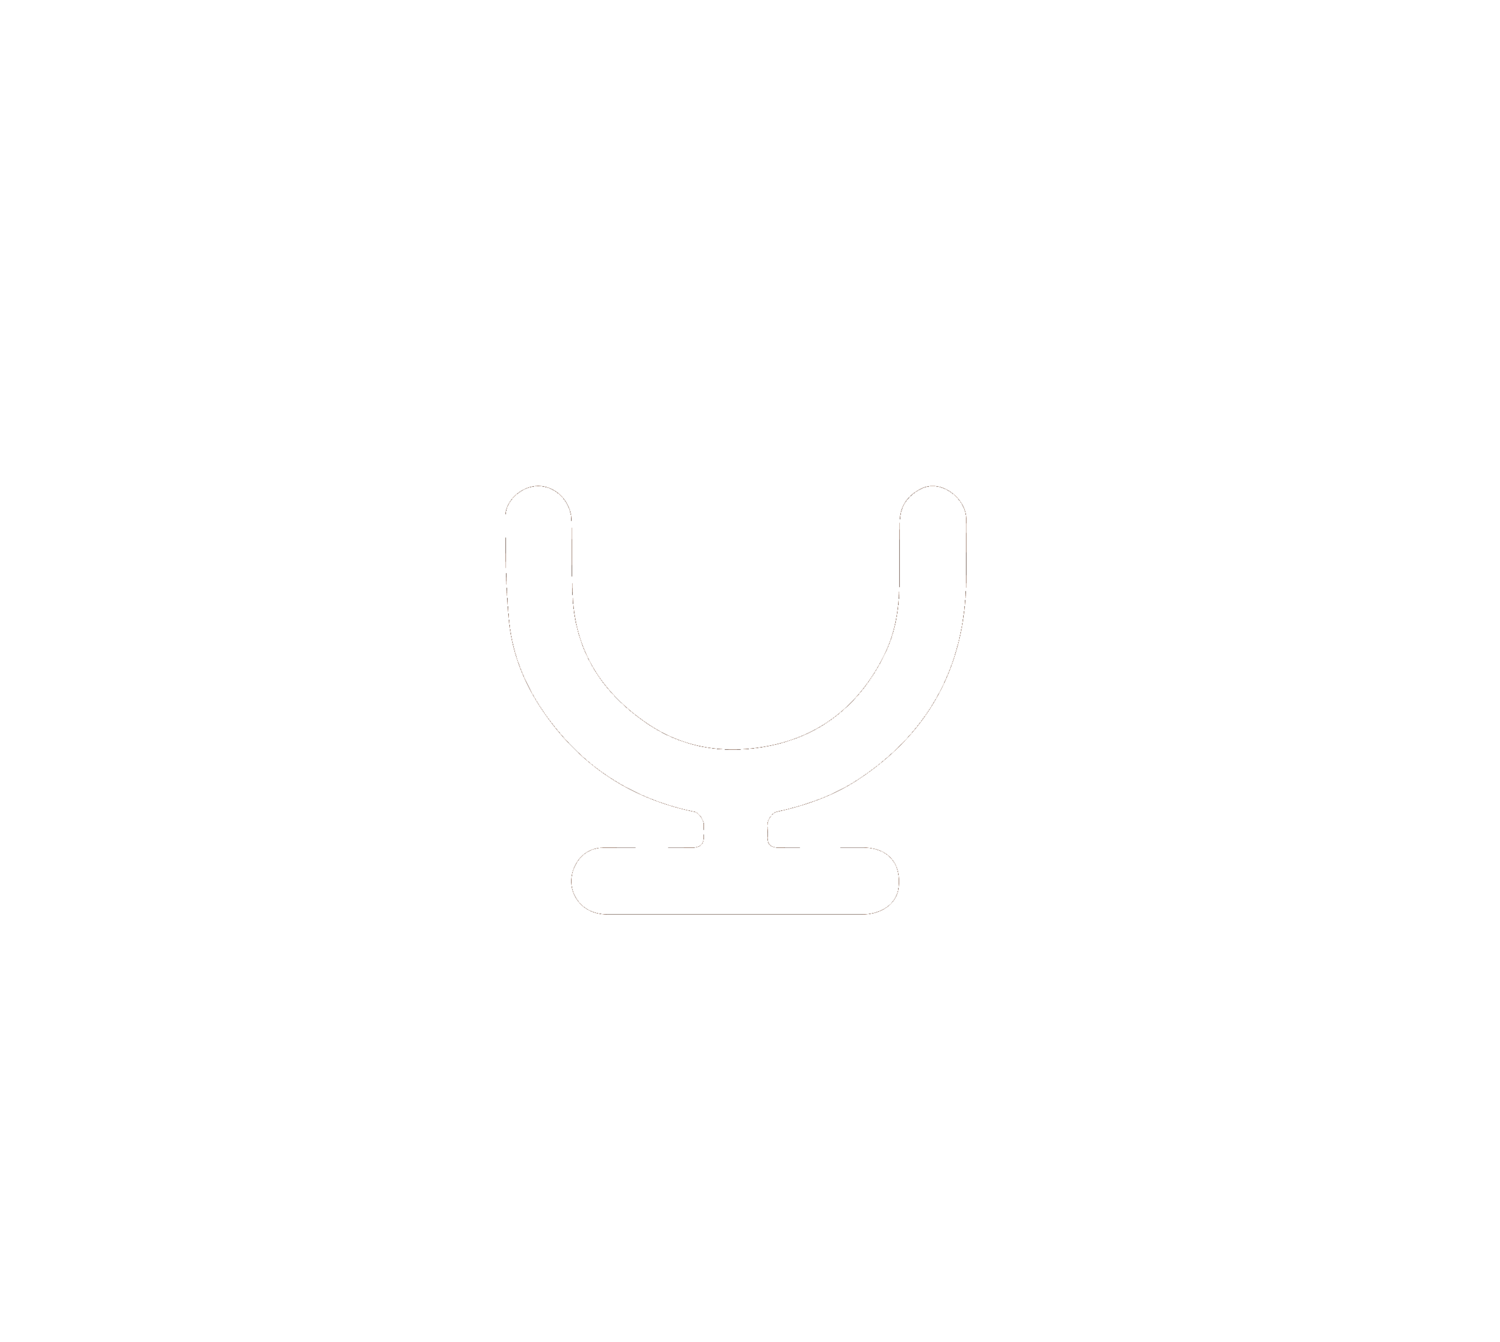 FireRTC - No Nonsense Free Phone Calls To the US and Canada